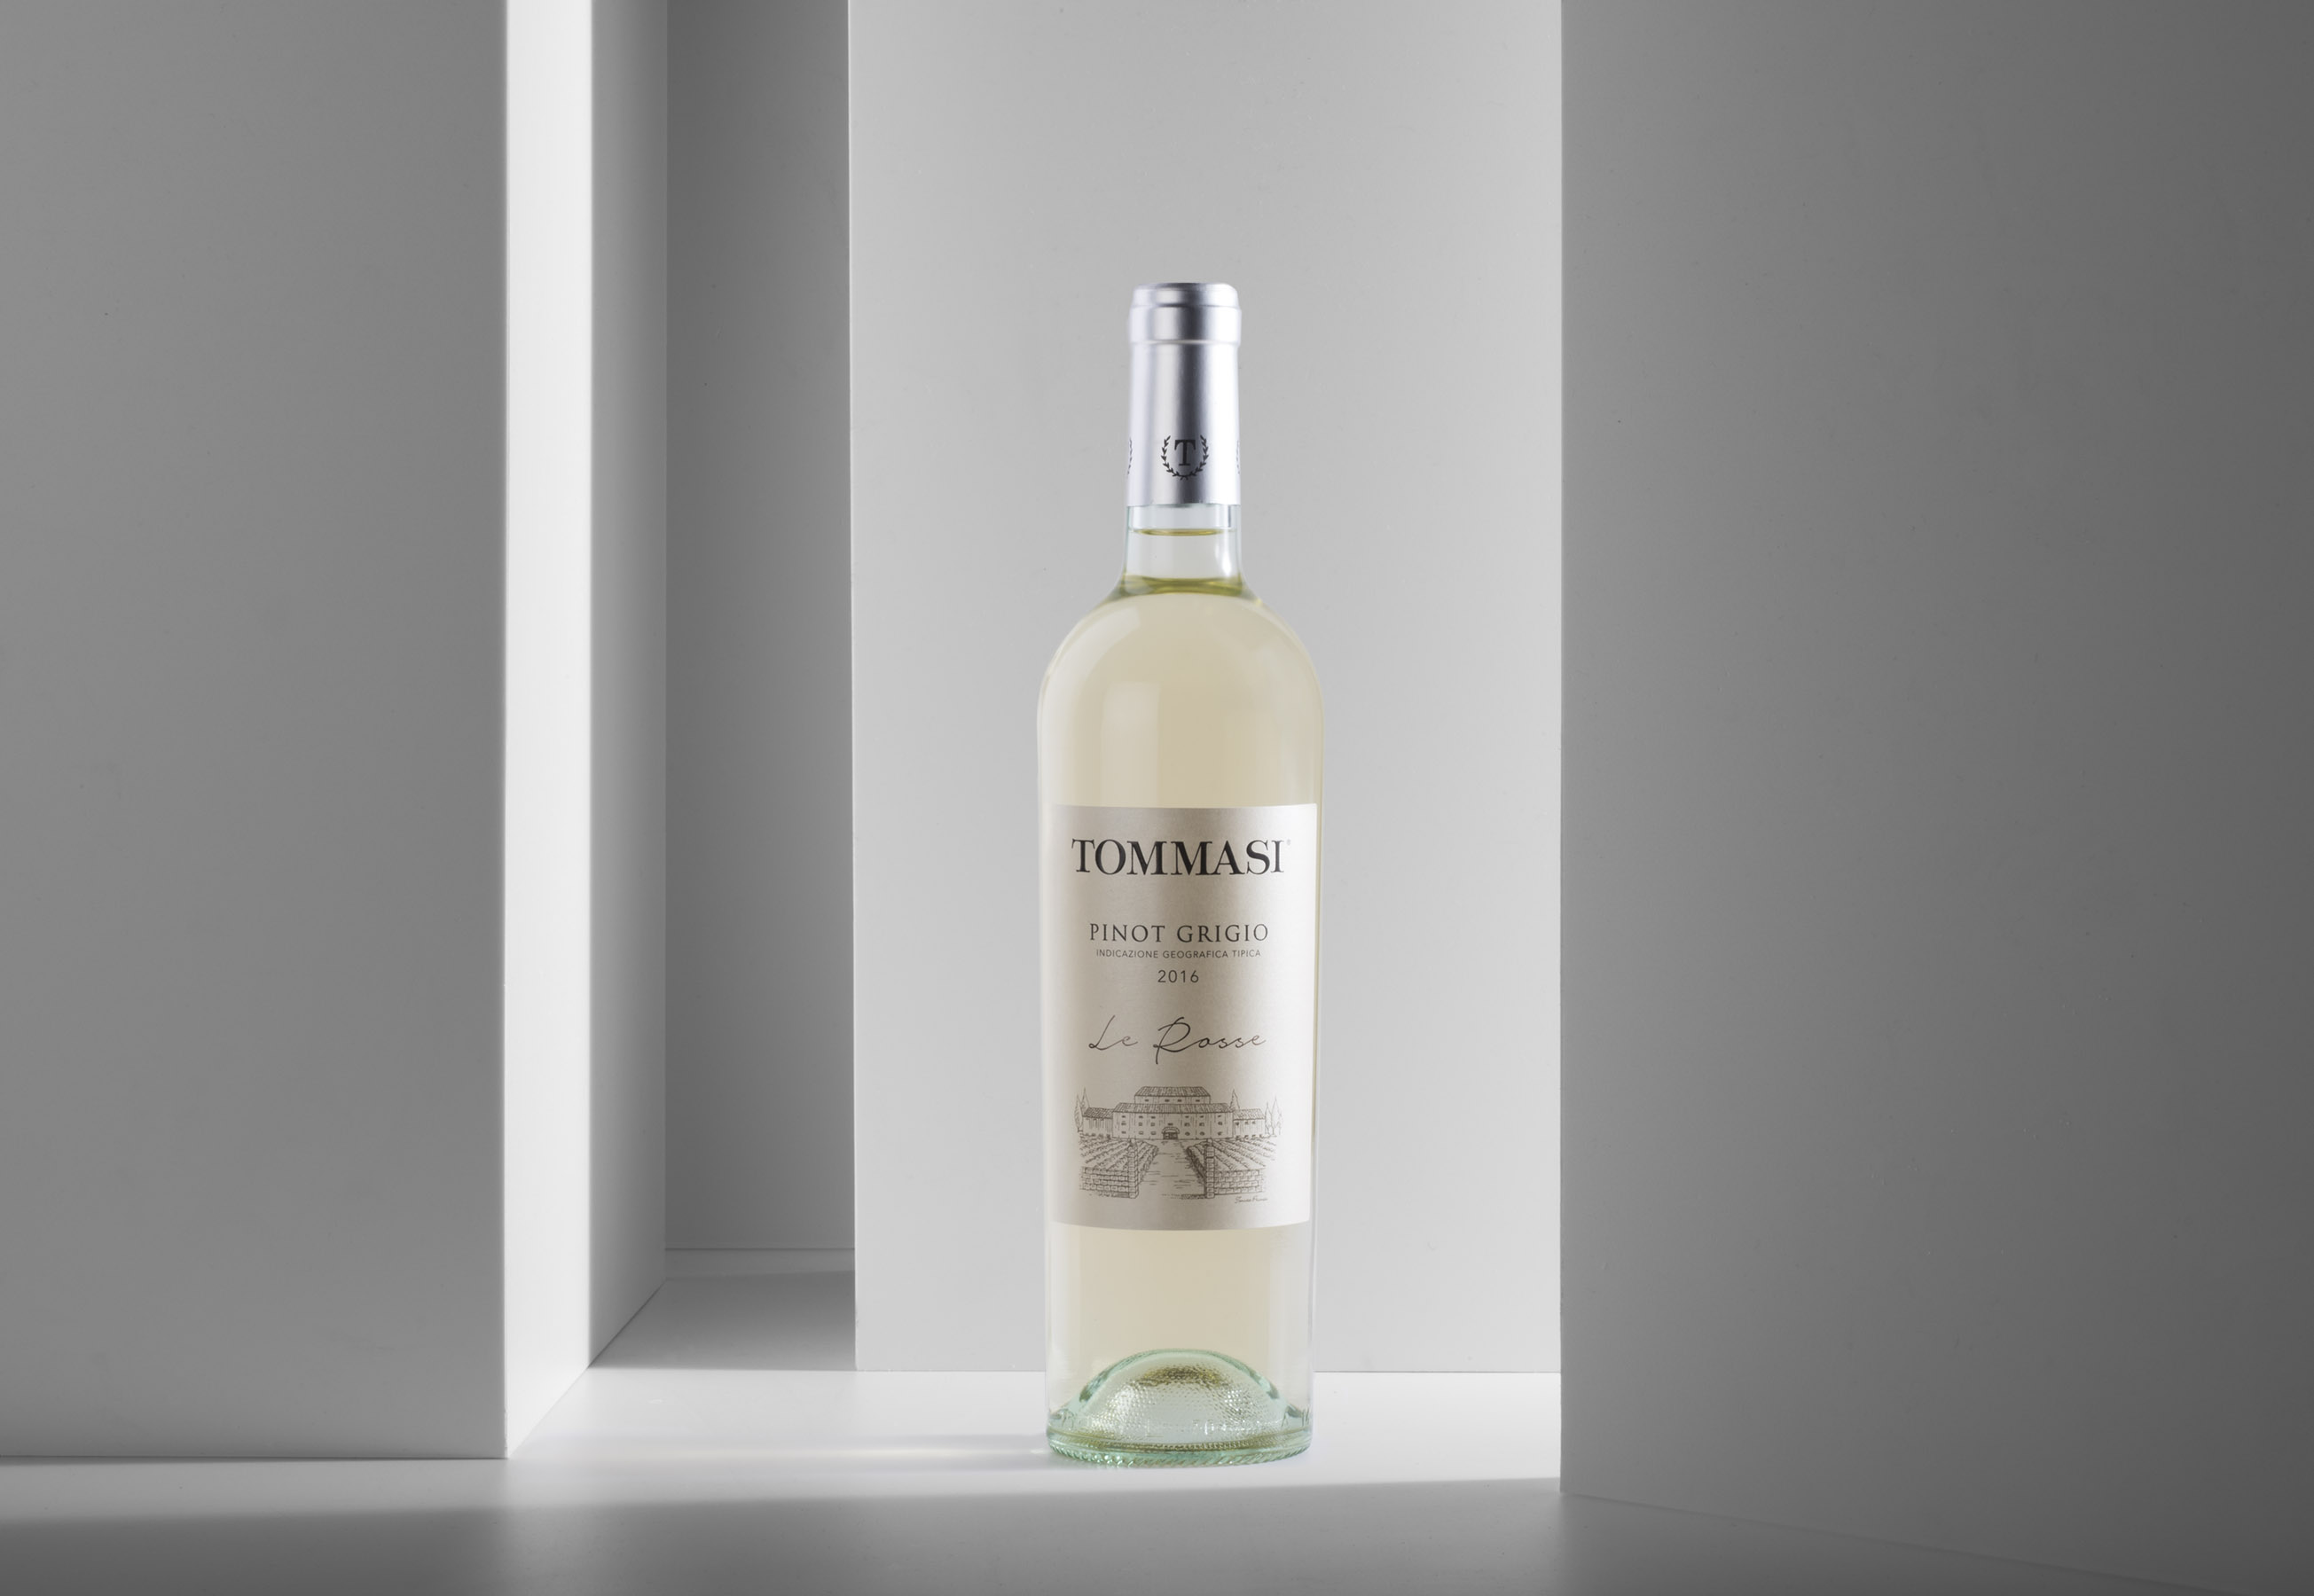 tommasi-pinotgrigio-le-rosse-new-restyling